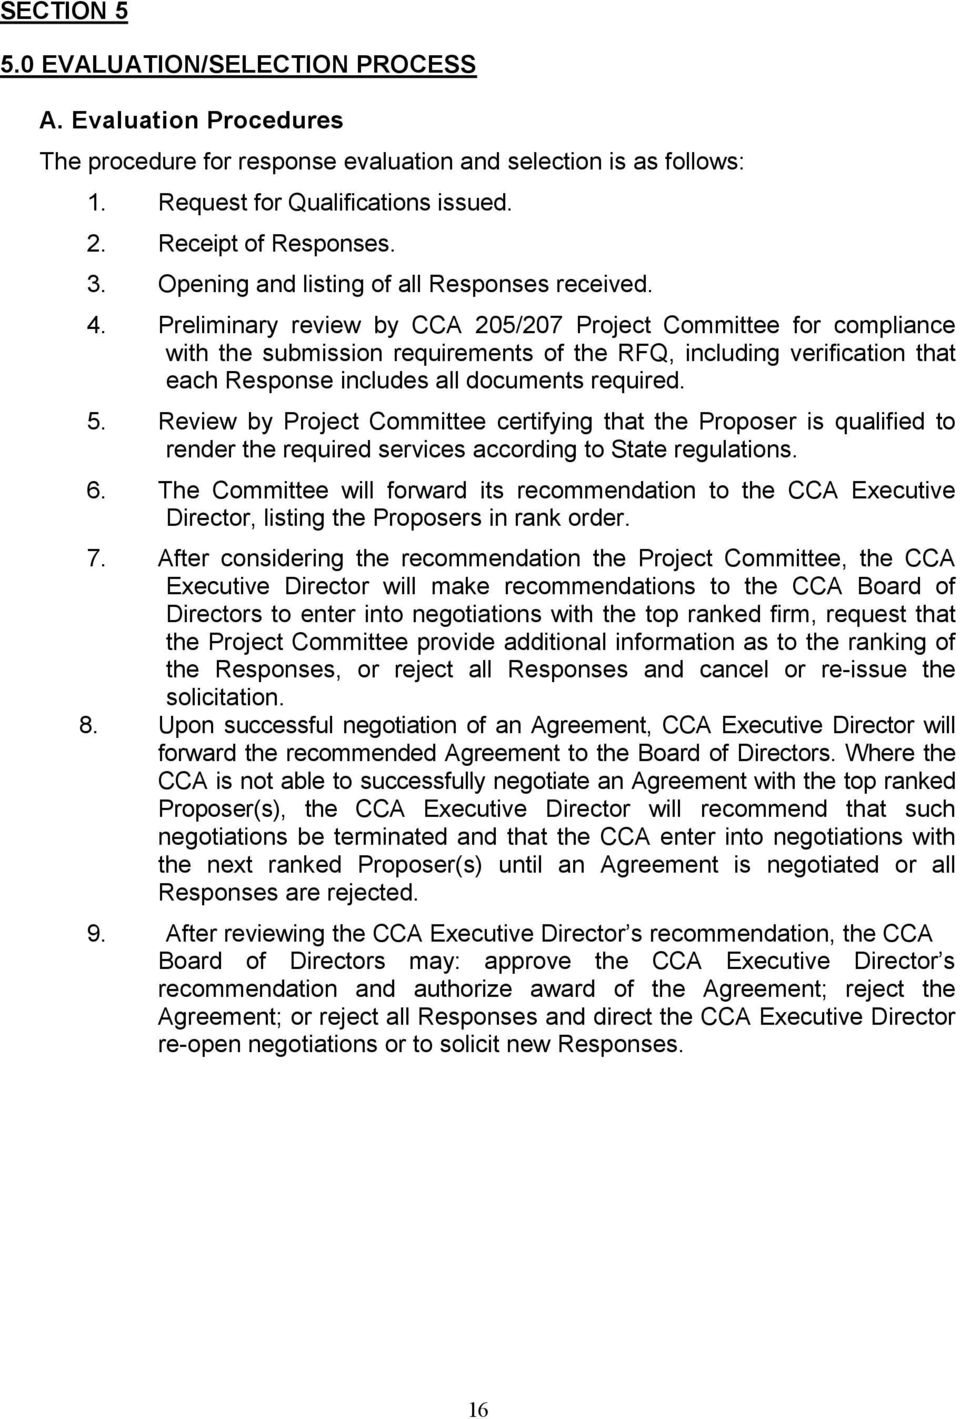 Preliminary review by CCA 205/207 Project Committee for compliance with the submission requirements of the RFQ, including verification that each Response includes all documents required. 5.